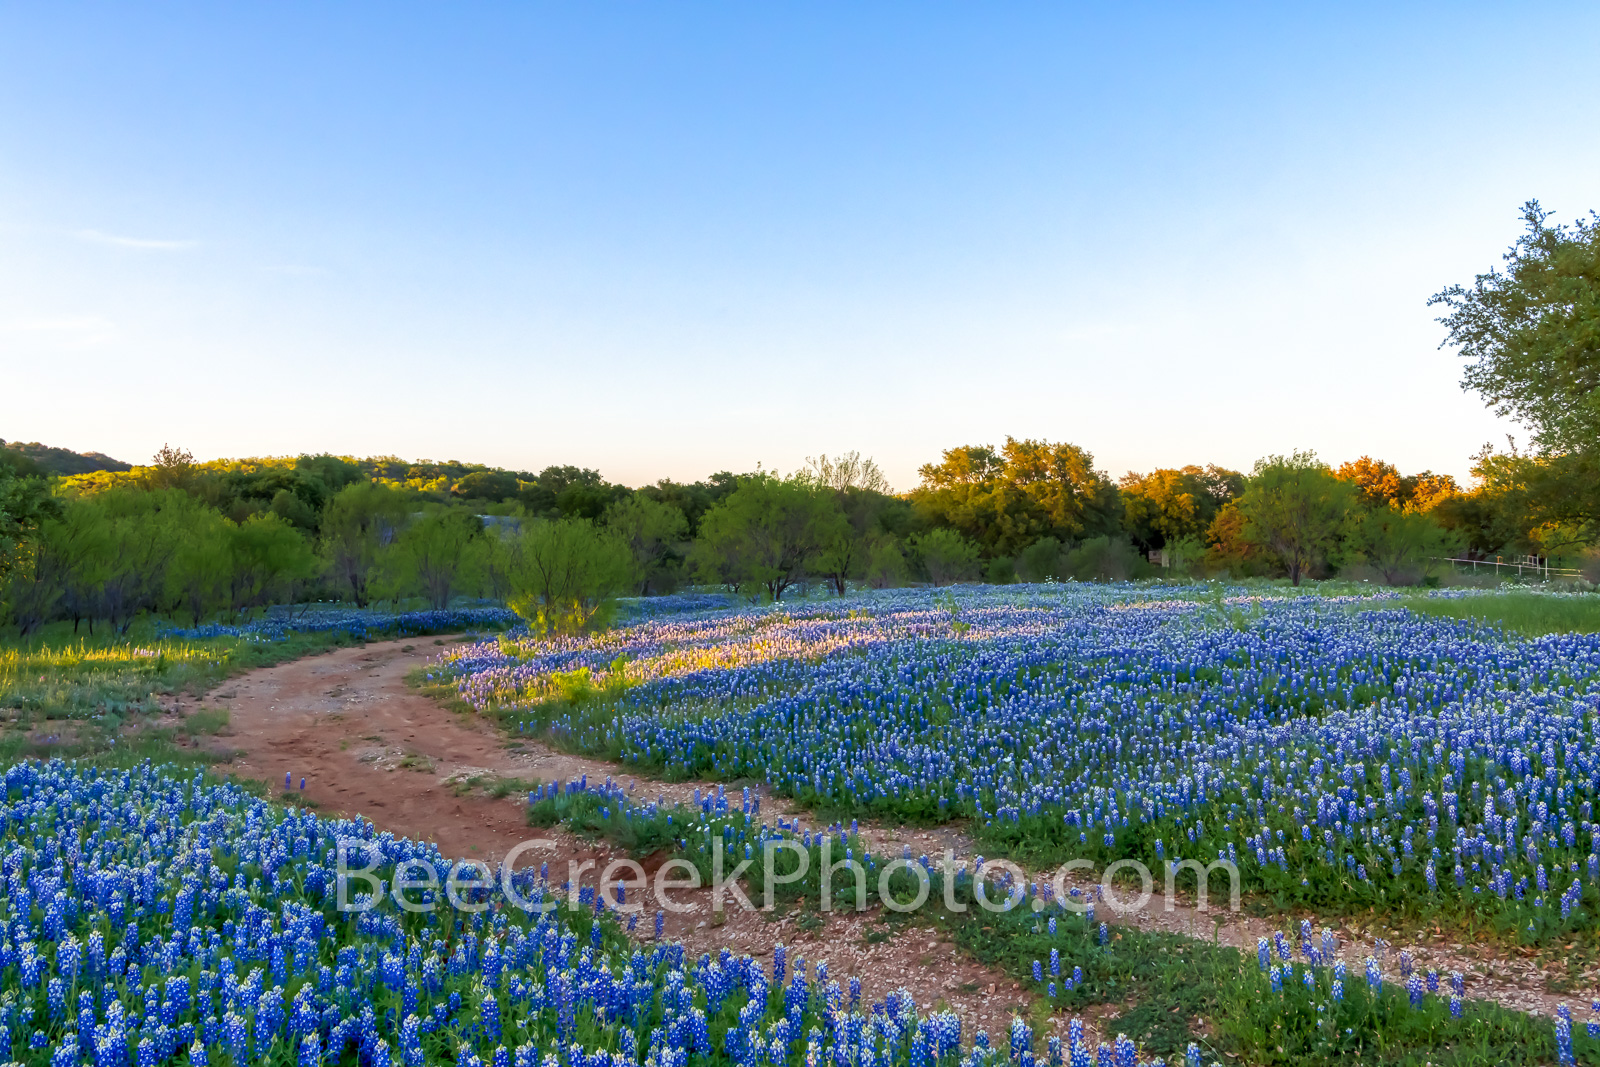 Shadows Across Bluebonnets - We came across this bluebonnet field in the Texas Hill Country near Llano and like the way the low...